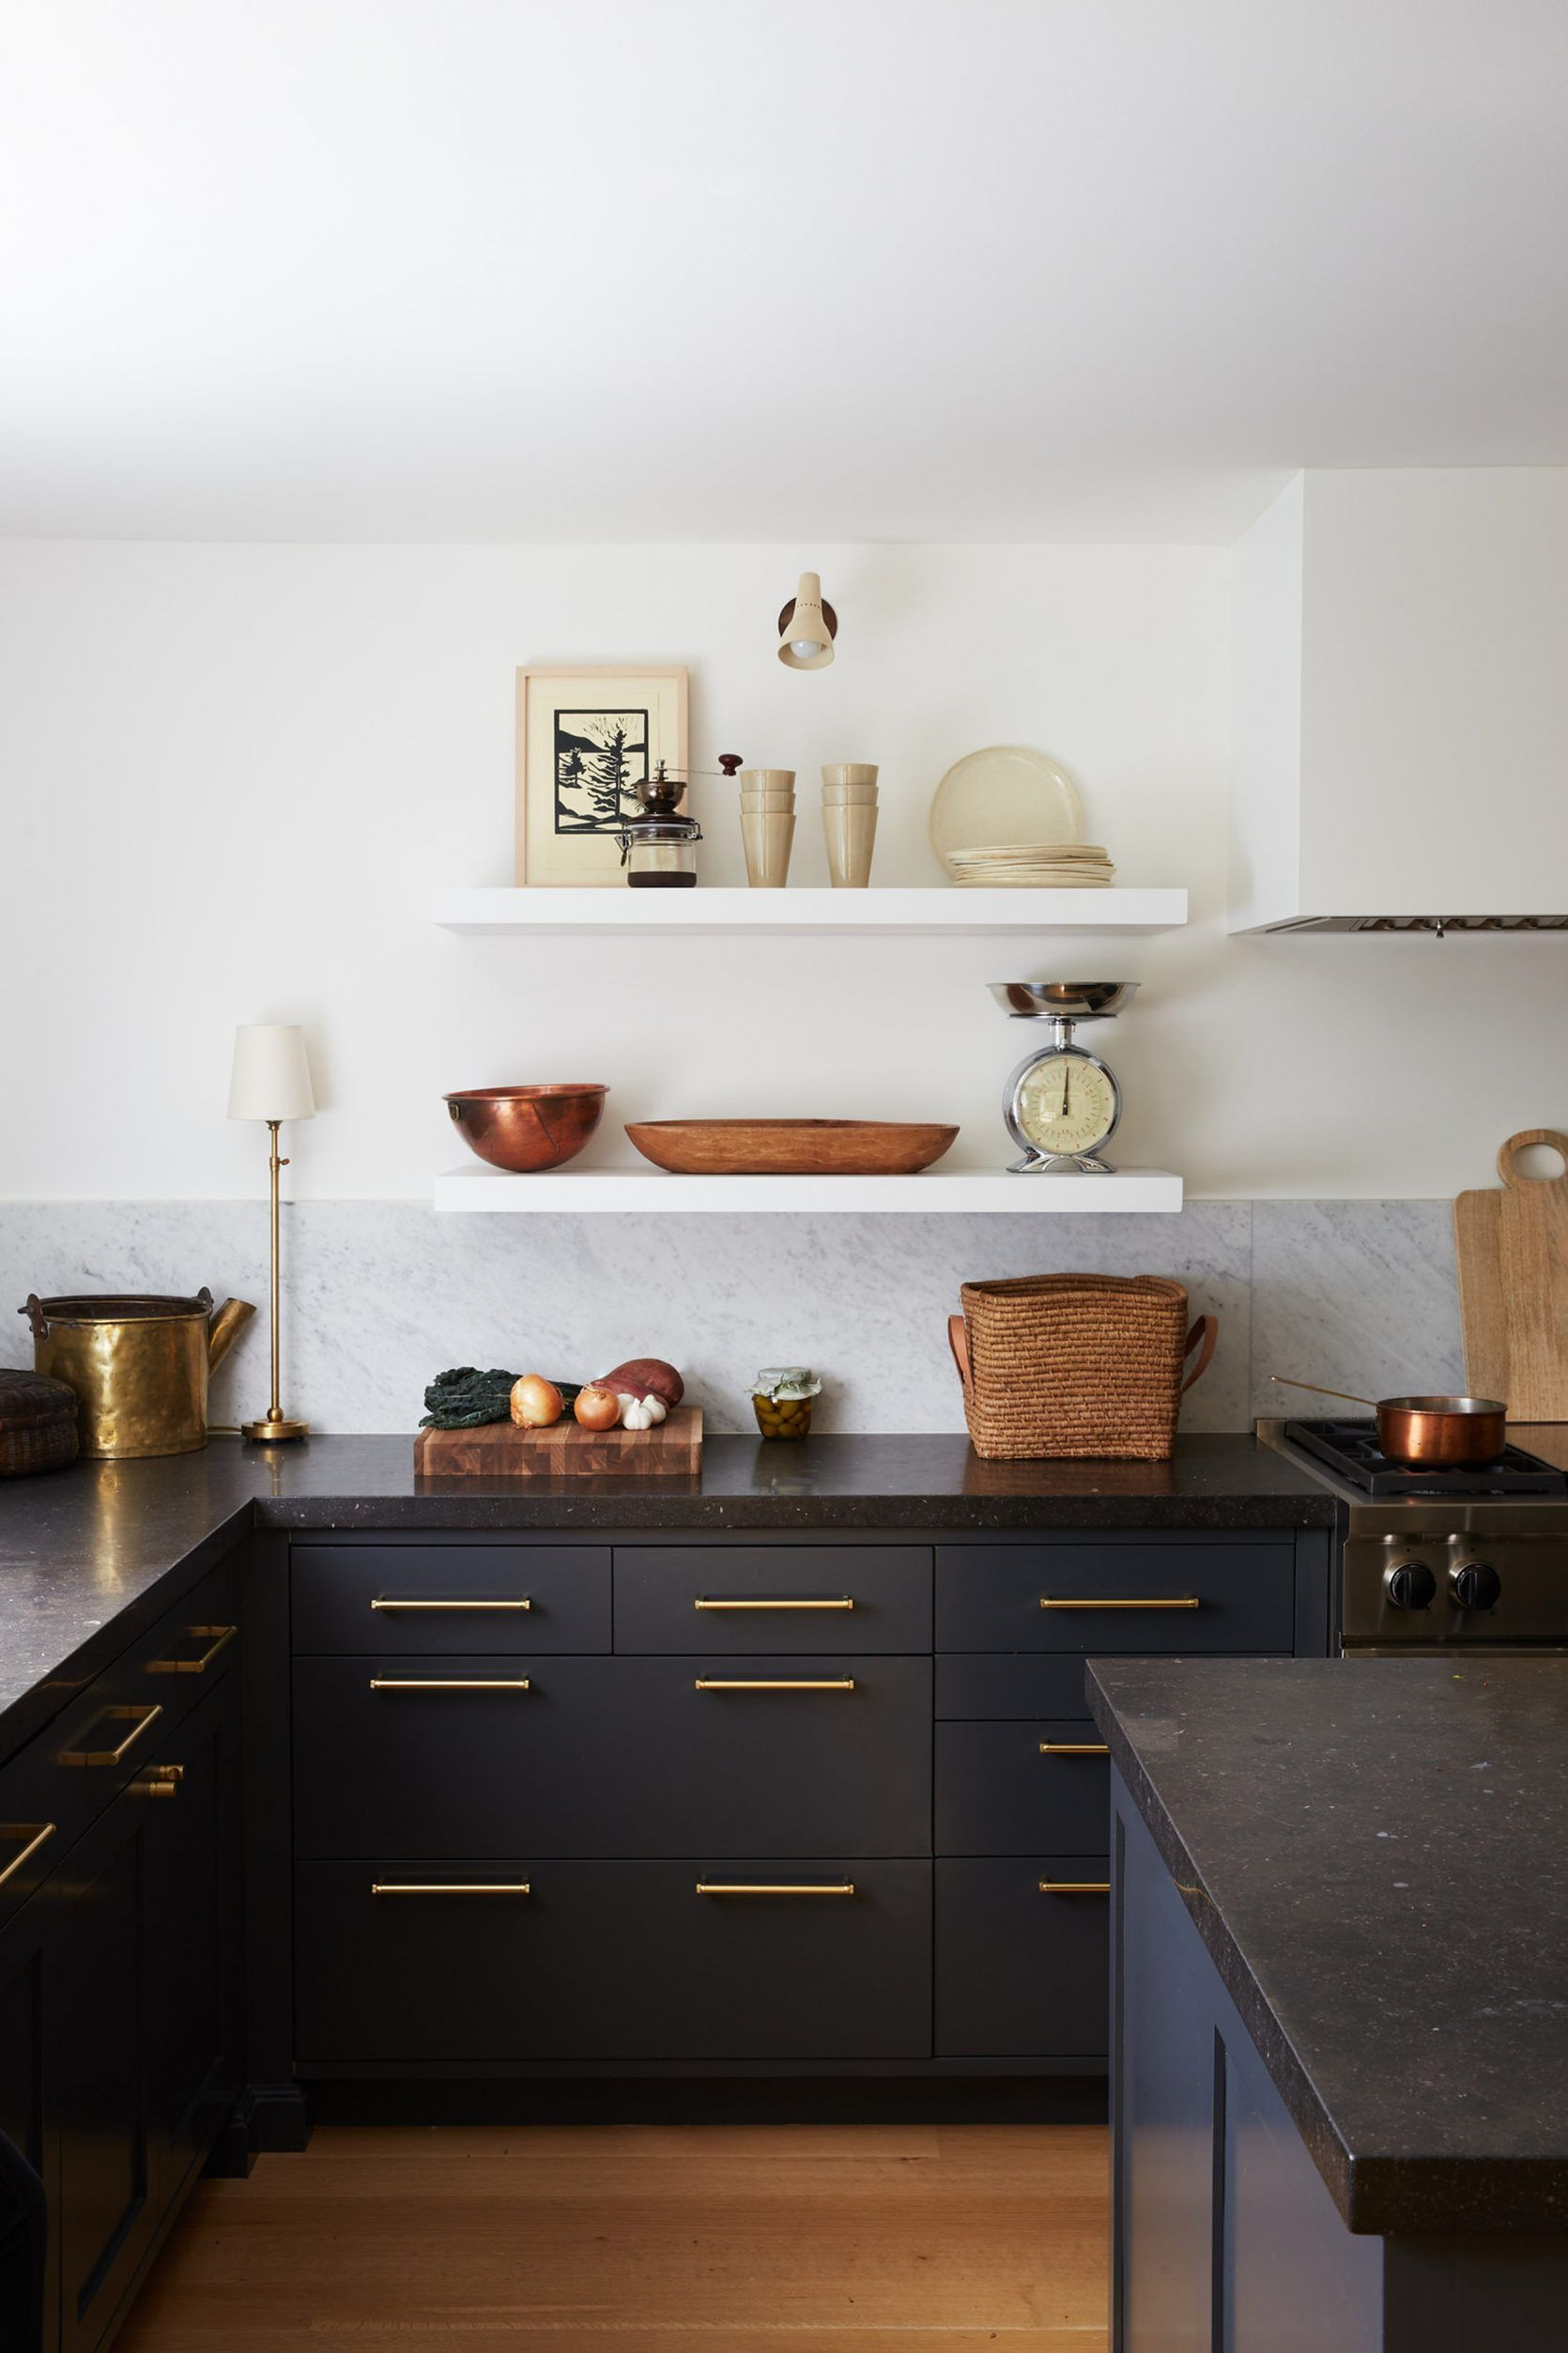 9 kitchen trends for 2019 we re betting will be huge kitchen trends kitchen design 2019 on kitchen decor trends id=83789